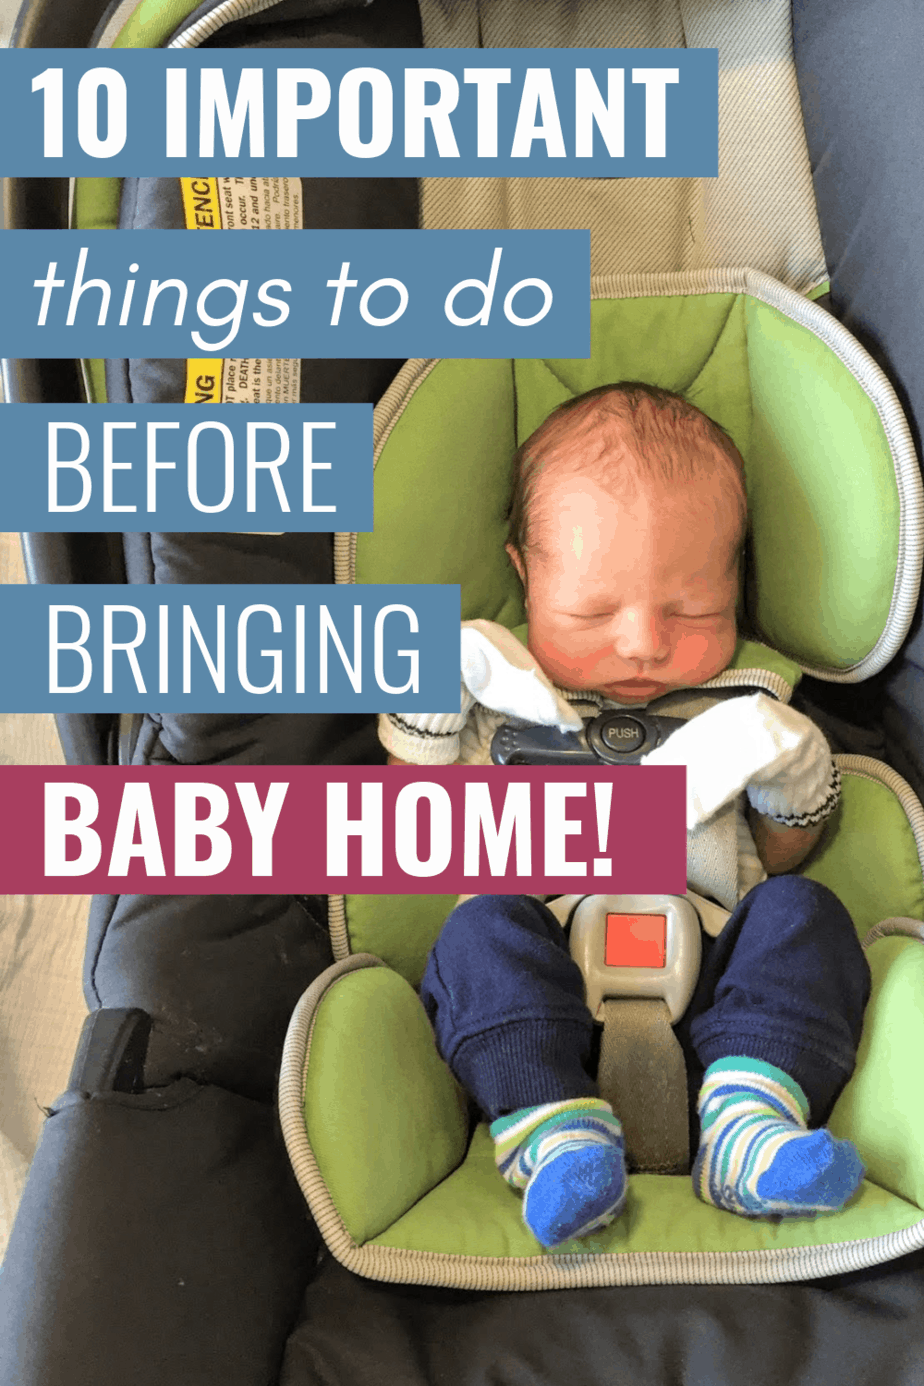 tips for bringing baby home